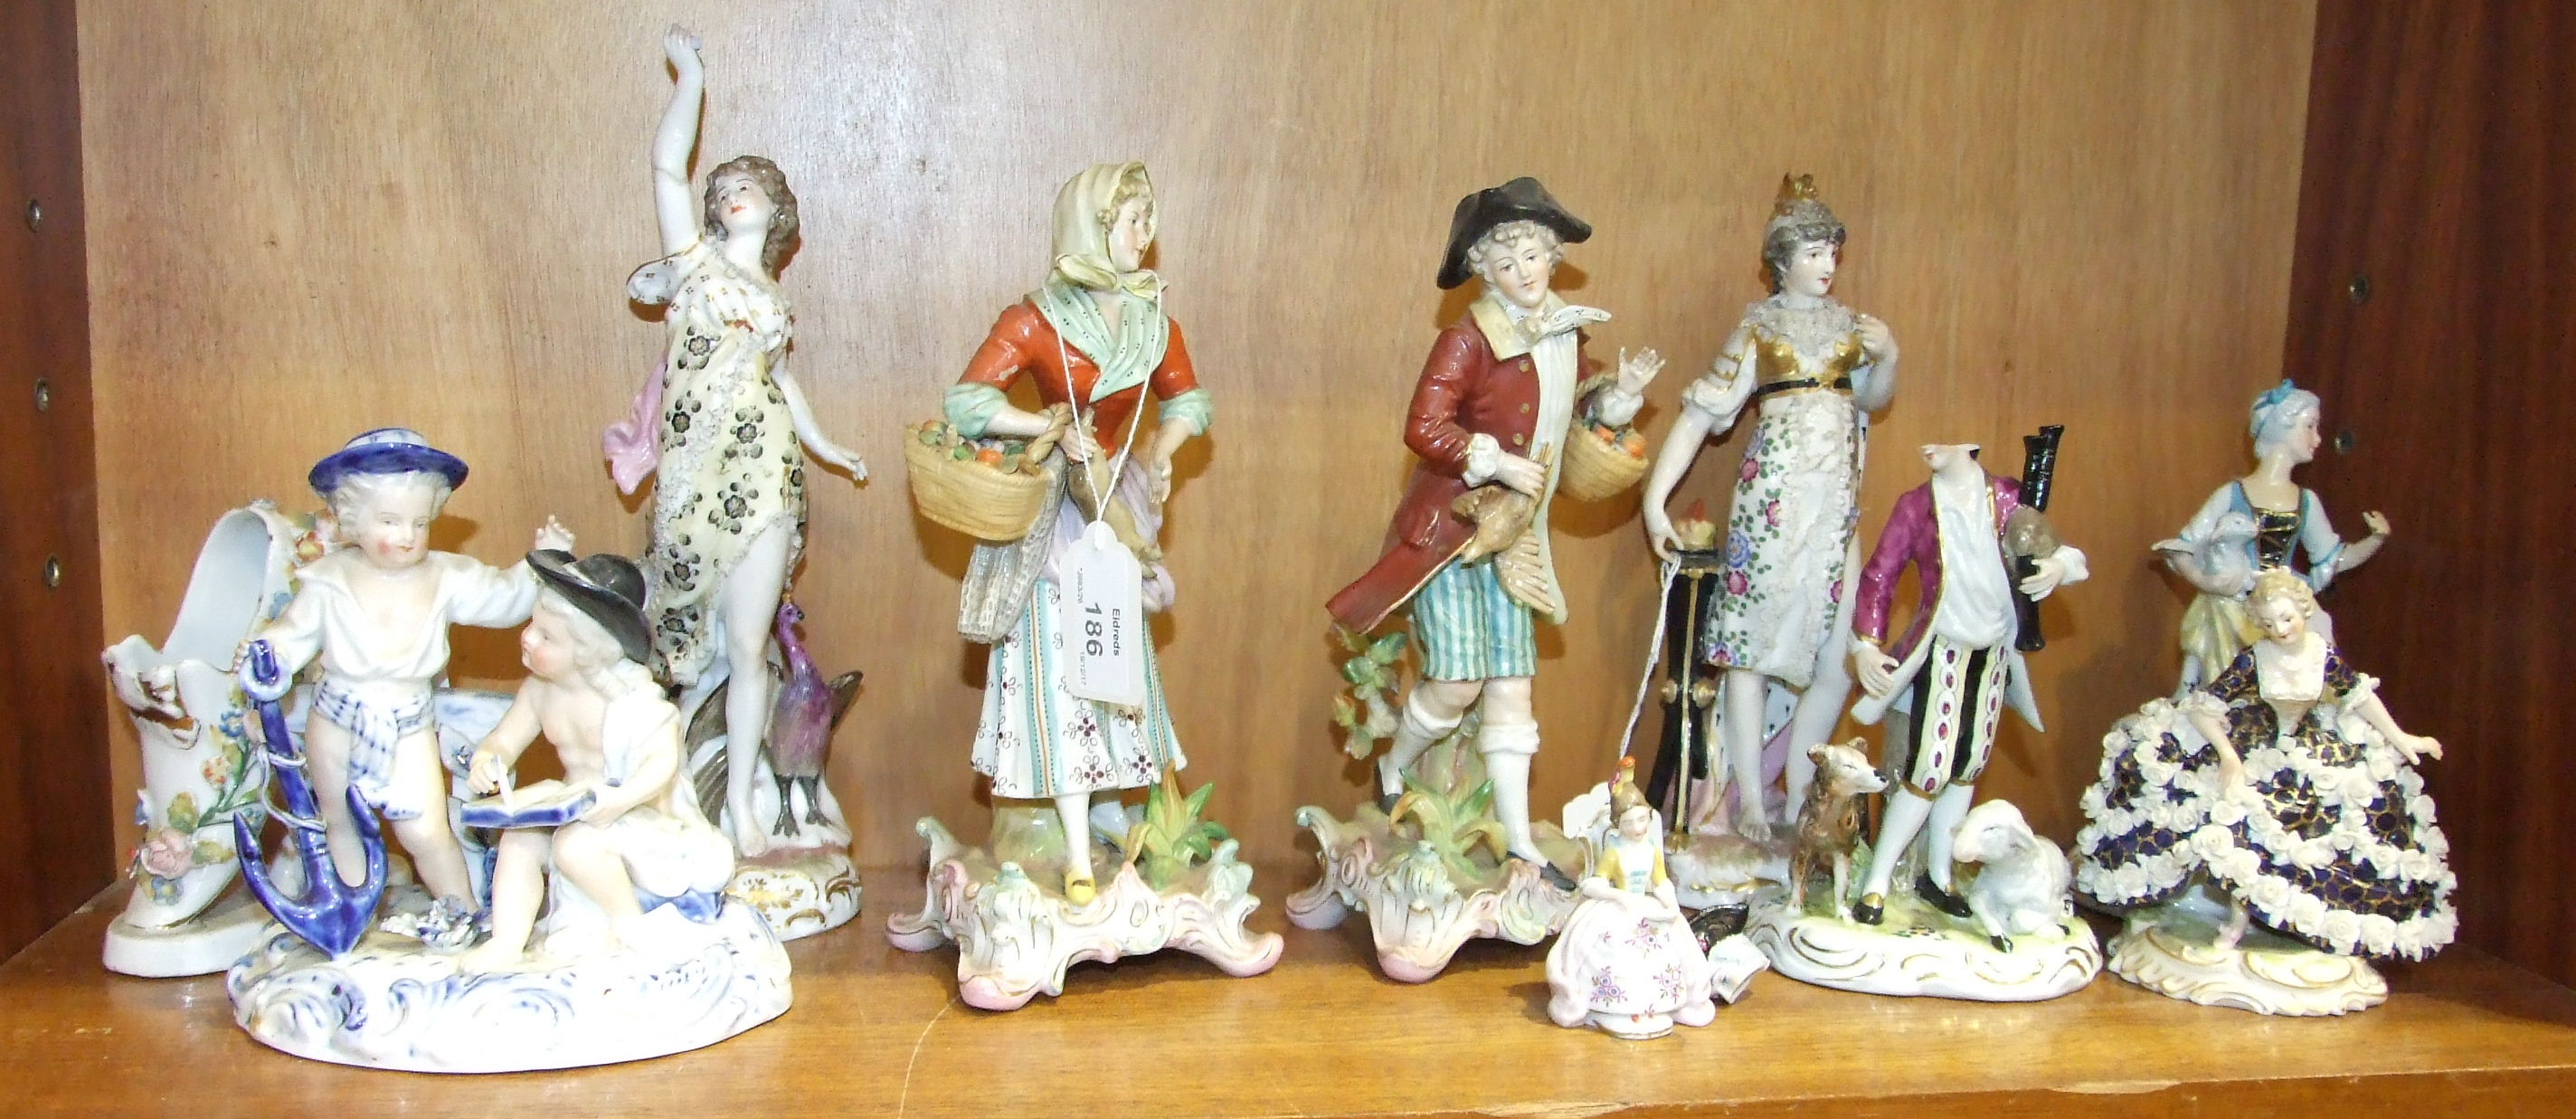 Lot 186 - A collection of 19th century Continental porcelain figures, (numerous damages).